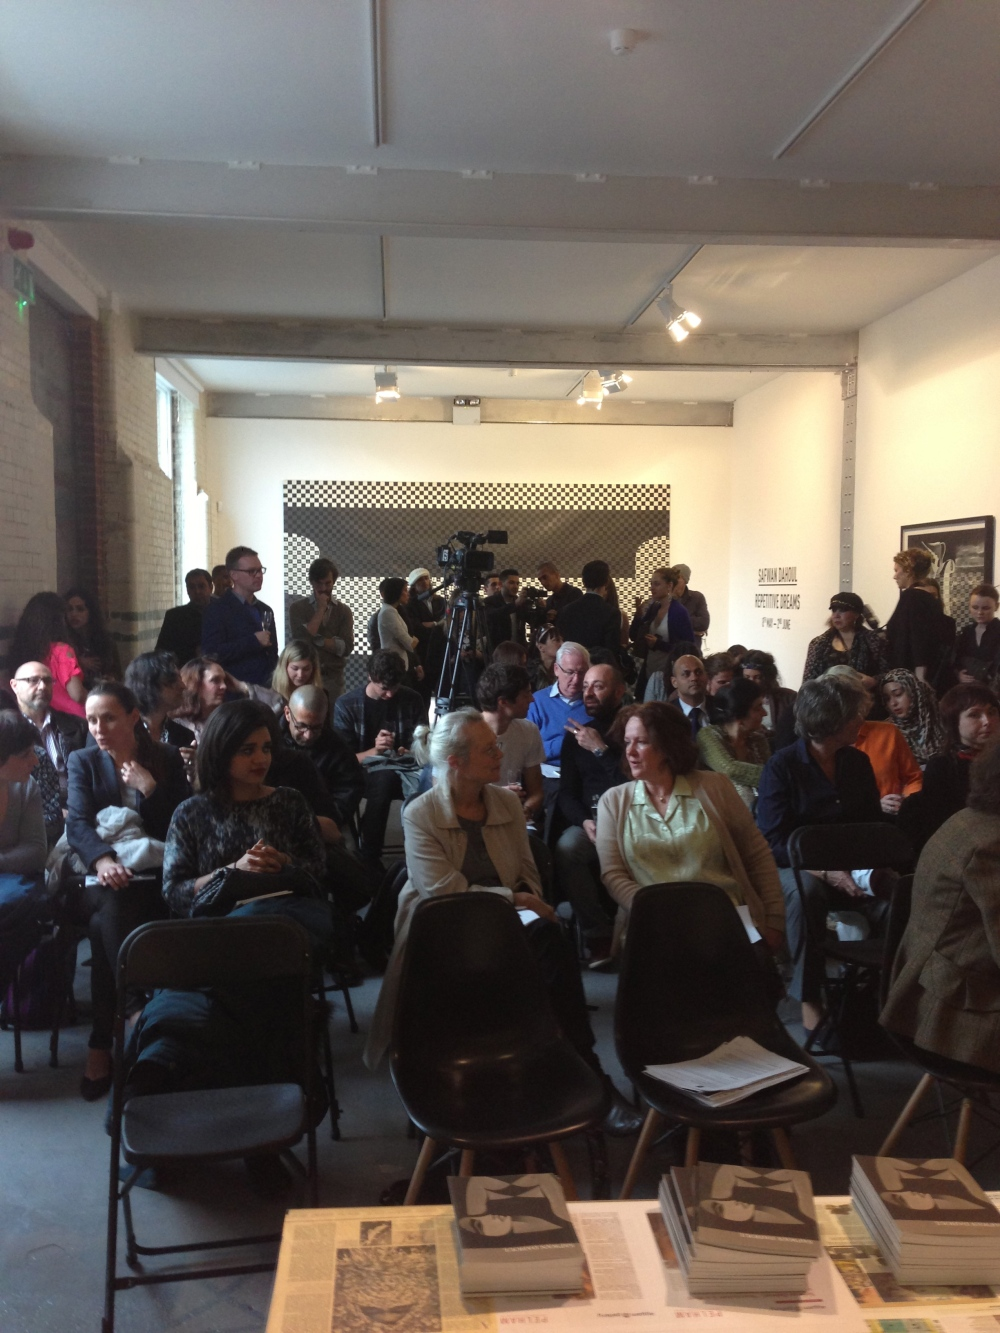 The audience in 'Repetitive Dream' Talk at Edge of Arabia. Courtesy: Al Mahha Art Blog